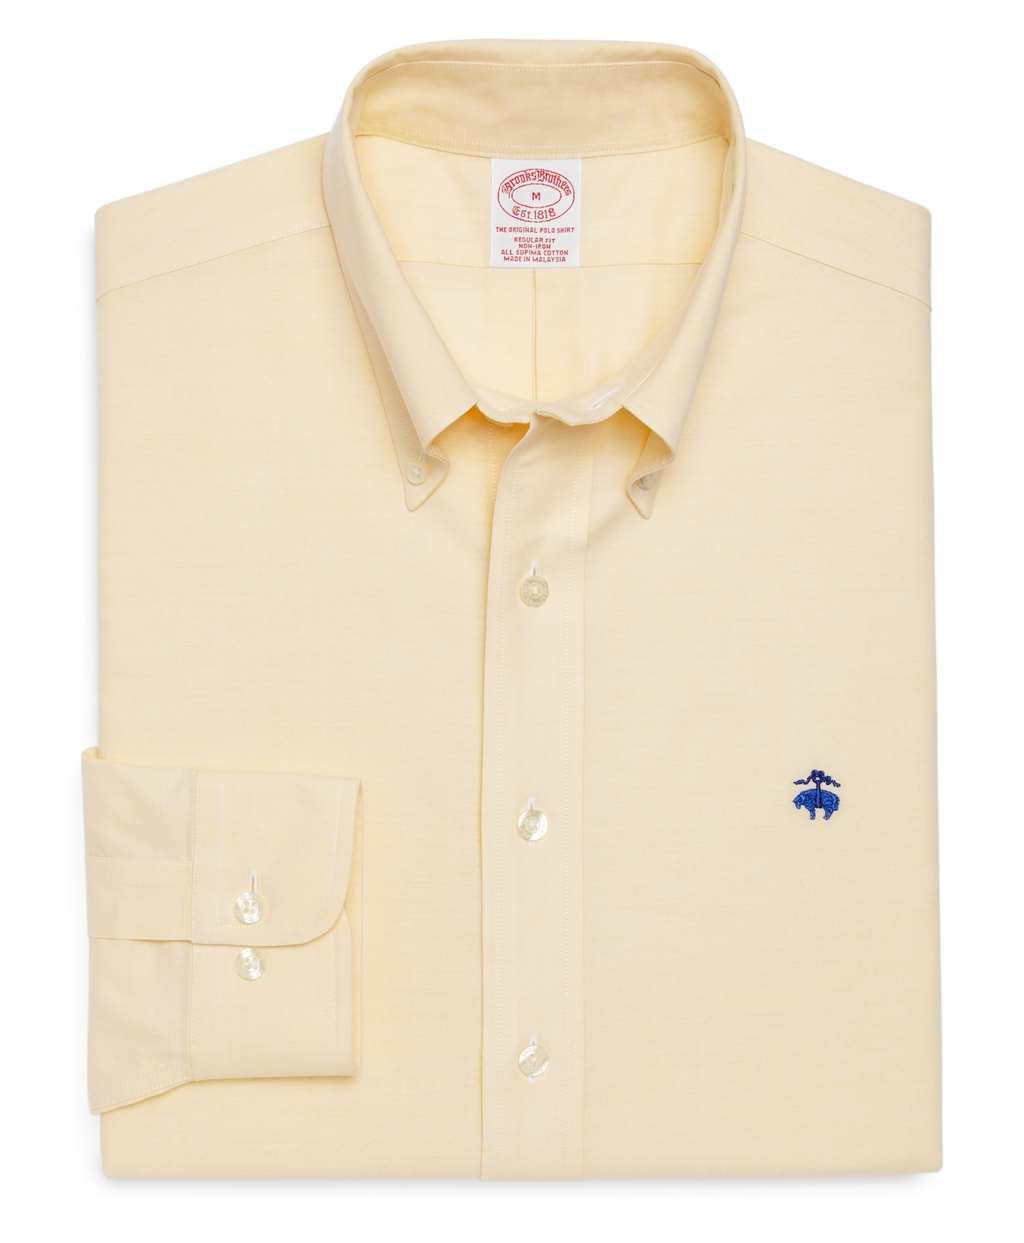 Brooks brothers regular fit brookscool solid oxford sport Brooks brothers shirt size guide